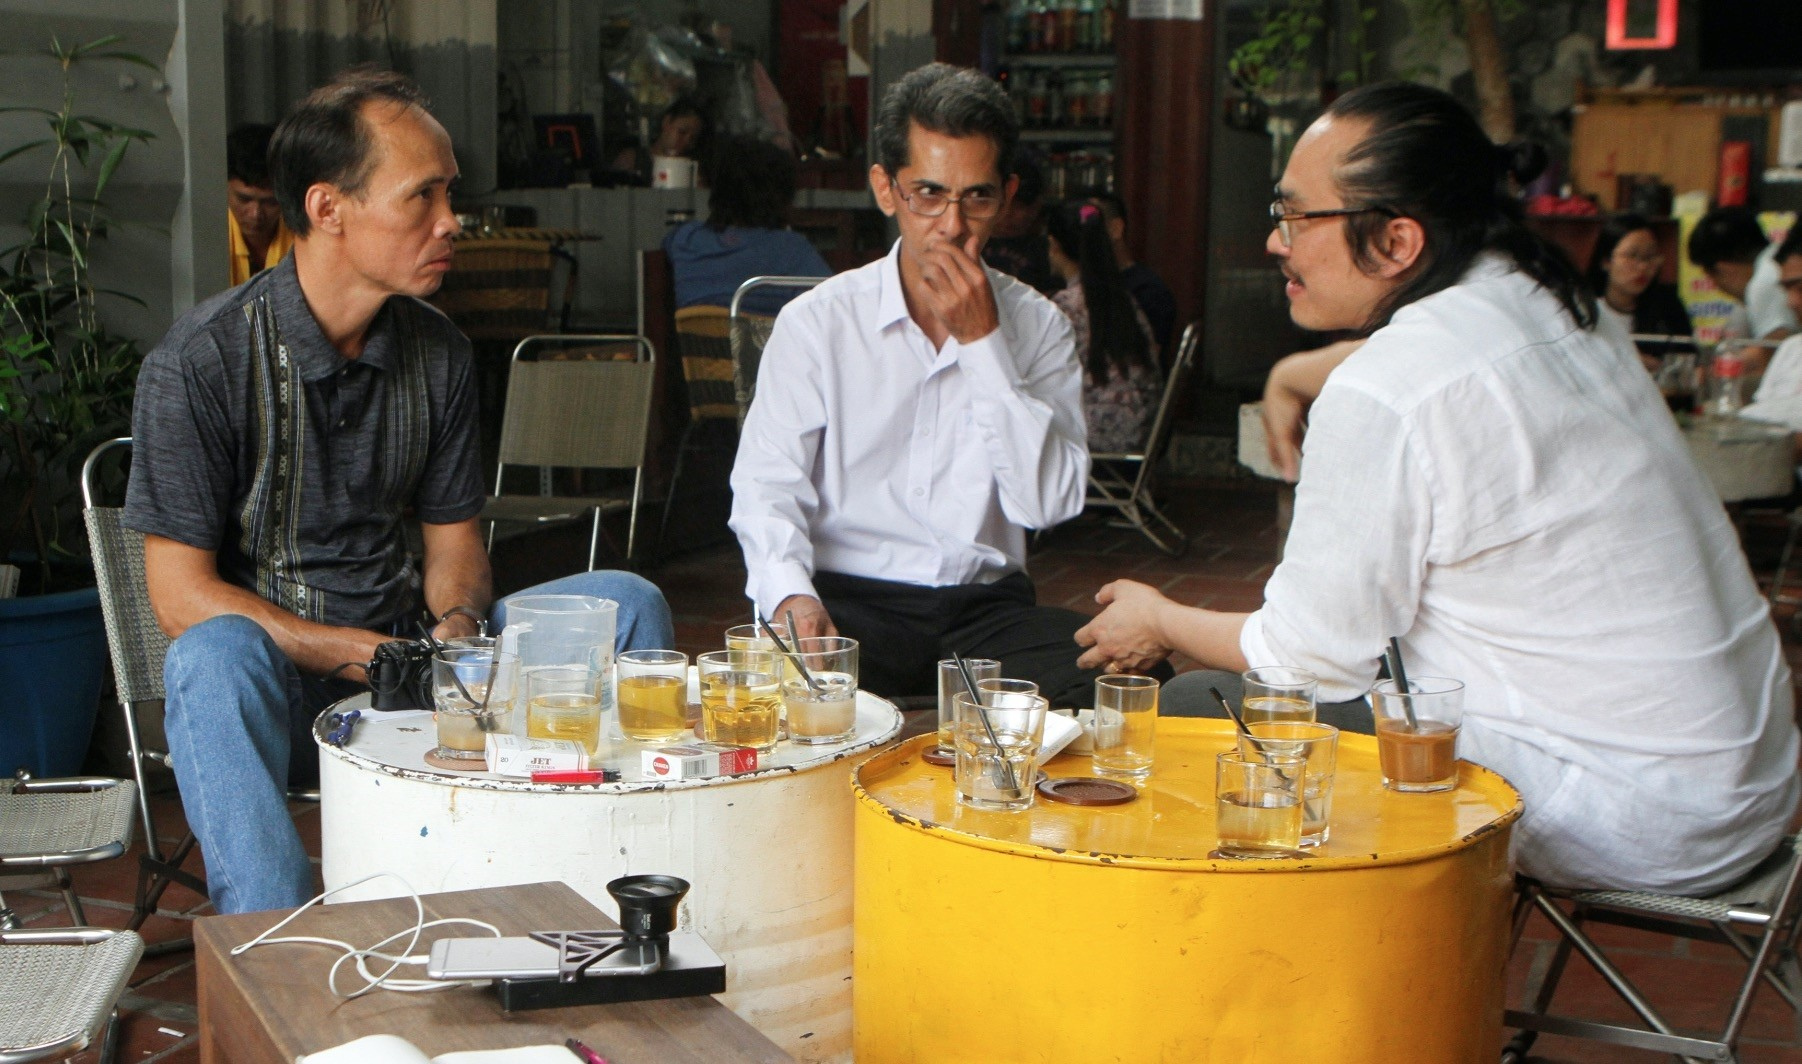 Vietnamese deportees and Amerasians Bui Thanh Hung (L) and Pham Chi Cuong (C) speak to U.S. lawyer and Vietnamese-American Tin Nguyen at a cafe in the suburbs of Ho Chi Minh City, Vietnam, April 19.